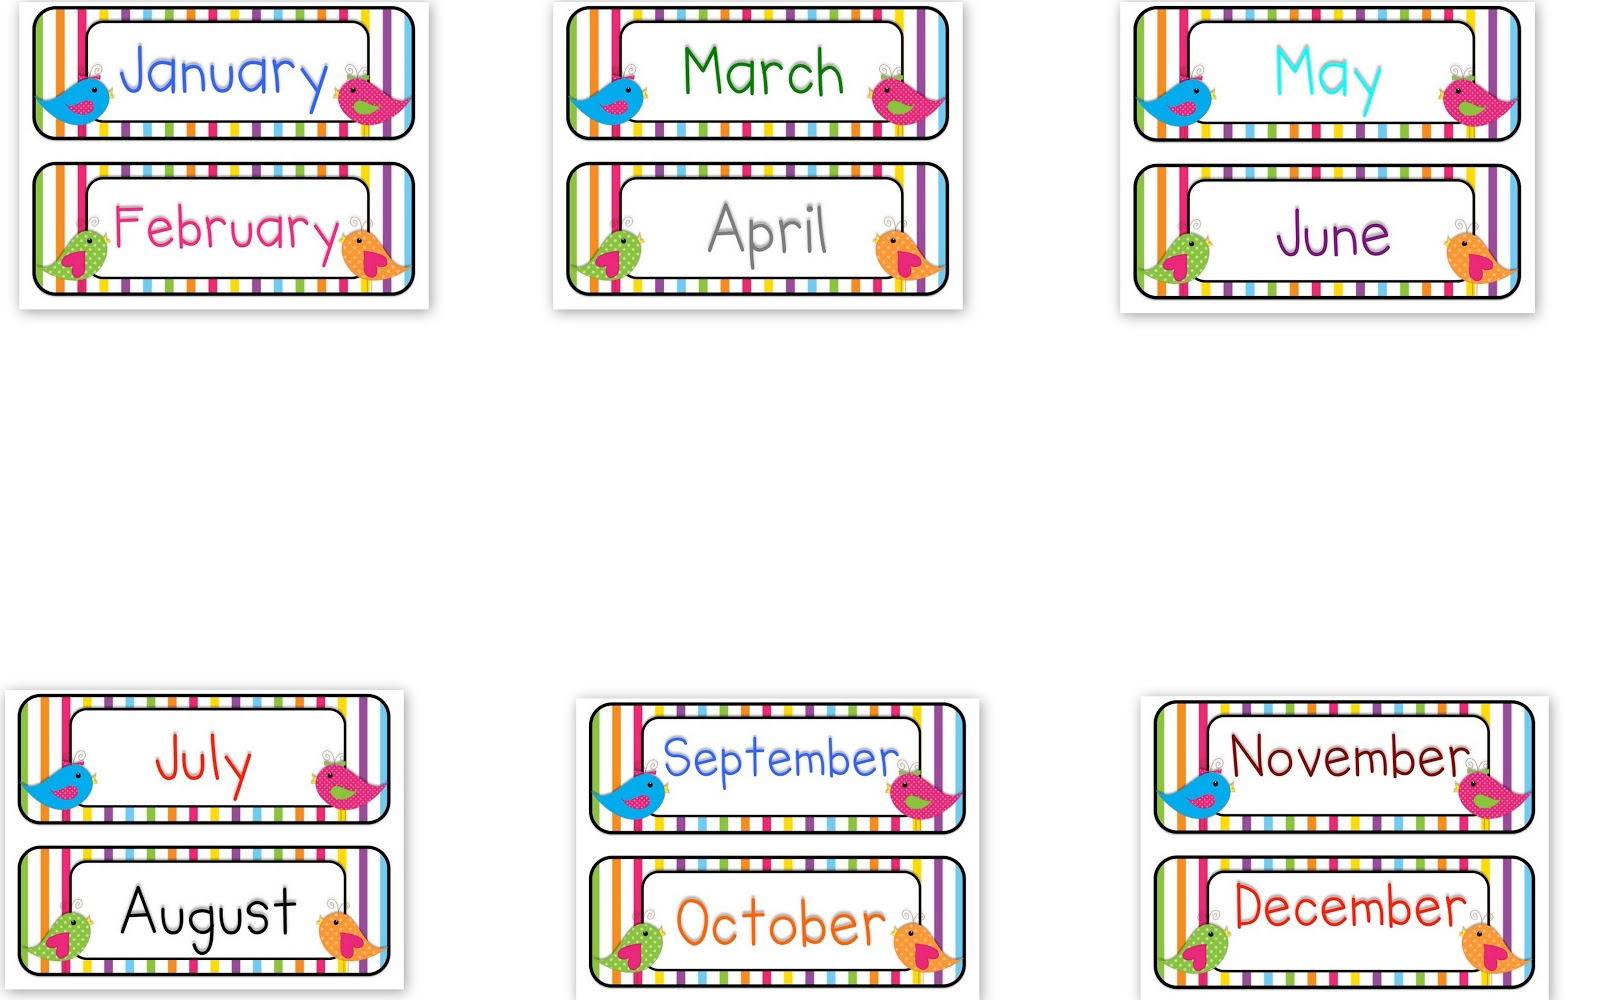 Month of the year clipart png royalty free library Months Of The Year Clipart & Months Of The Year Clip Art Images ... png royalty free library